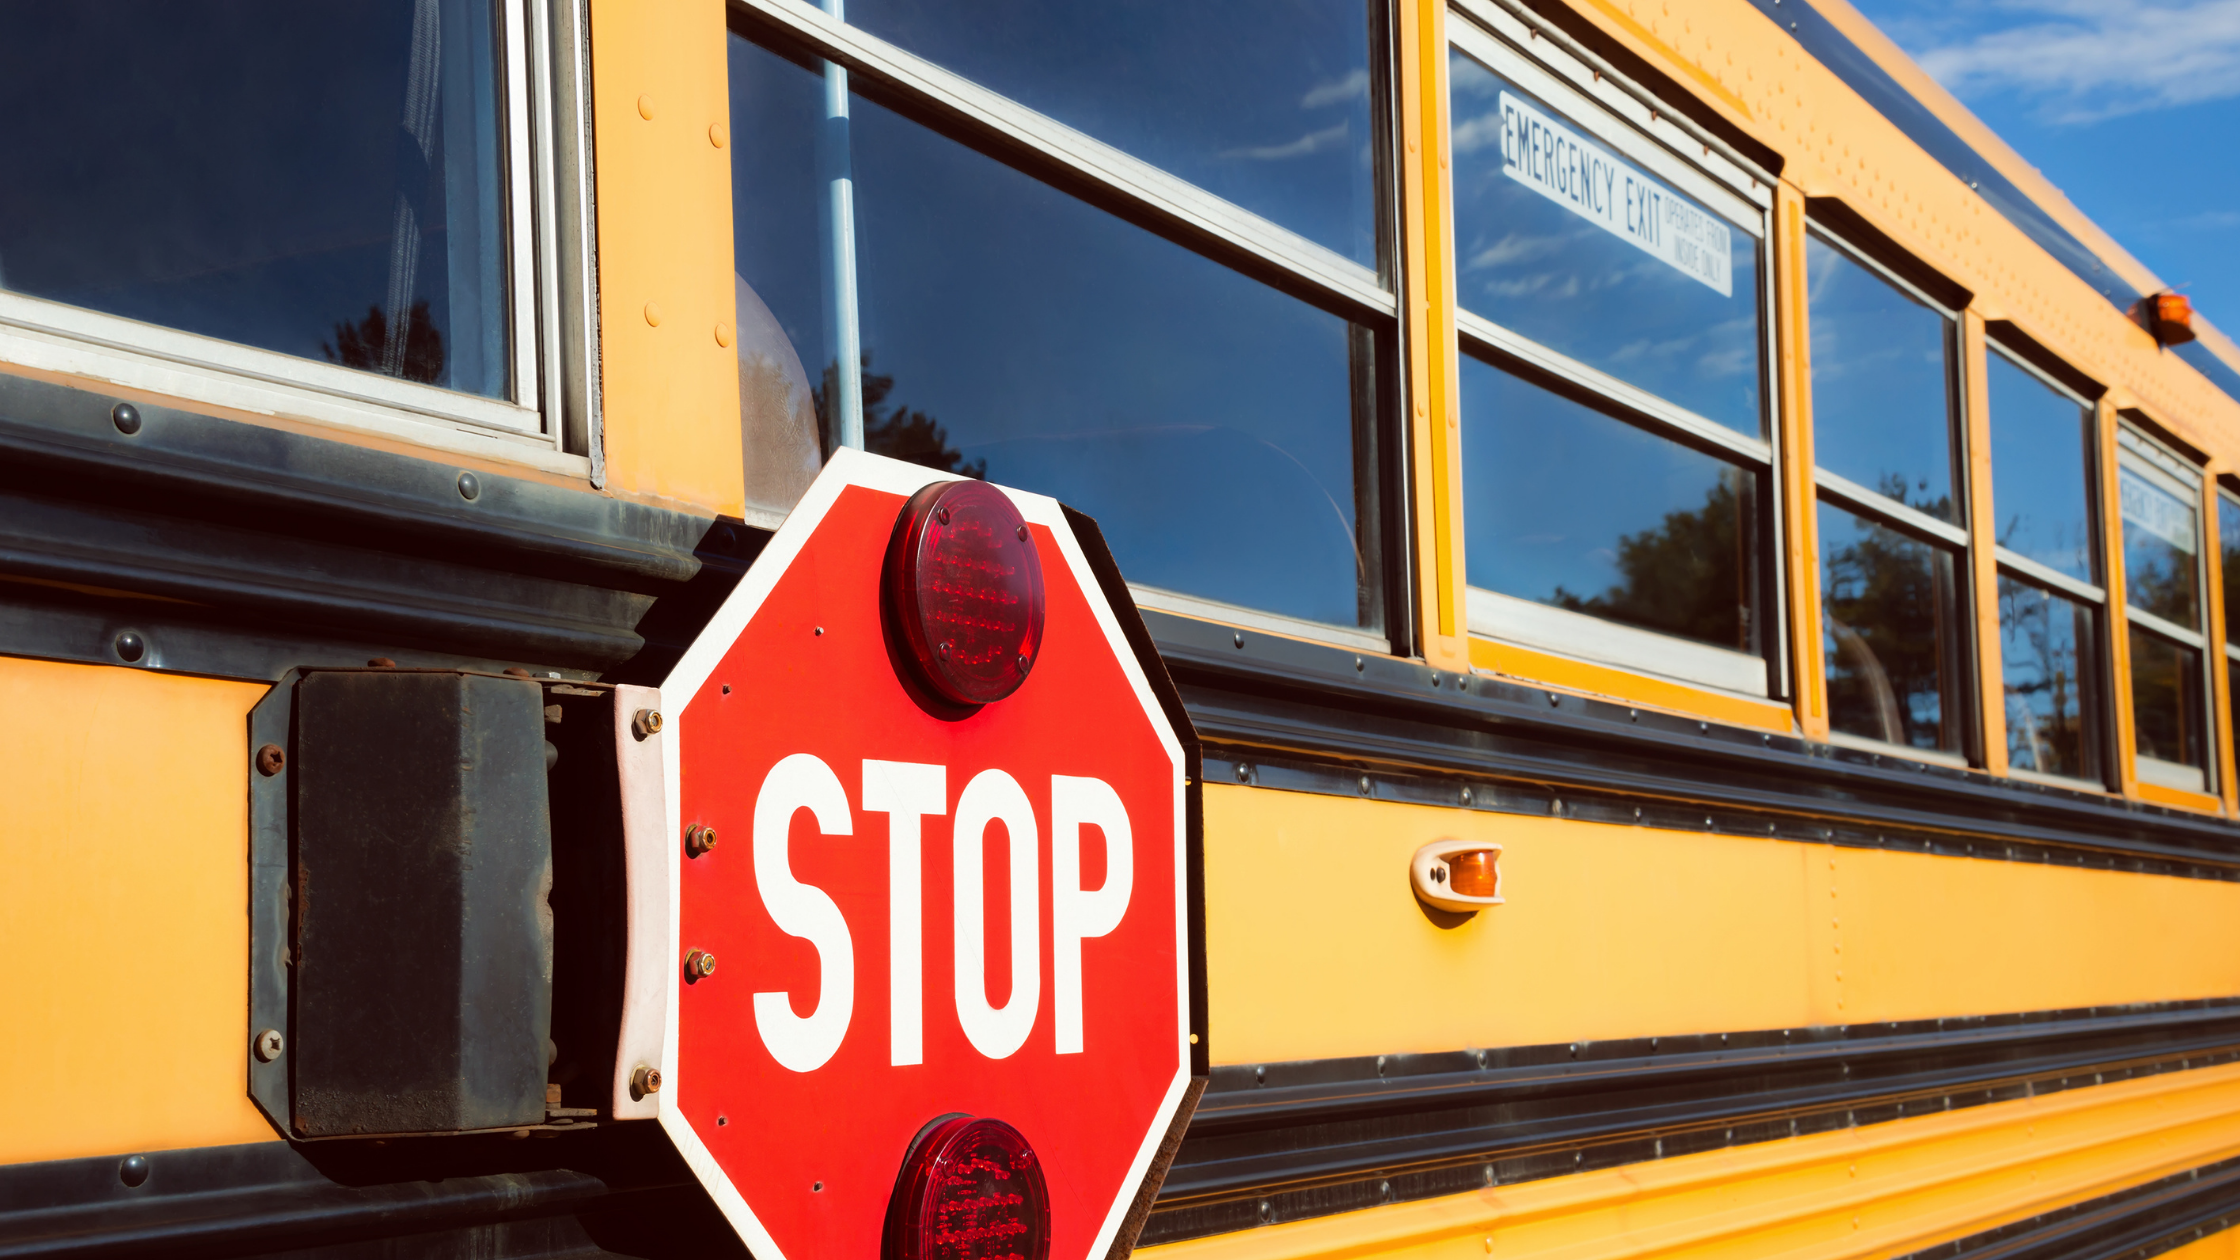 Police are investigating a motor vehicle collision involving a school bus that occurred in Bedford   haligonia.ca